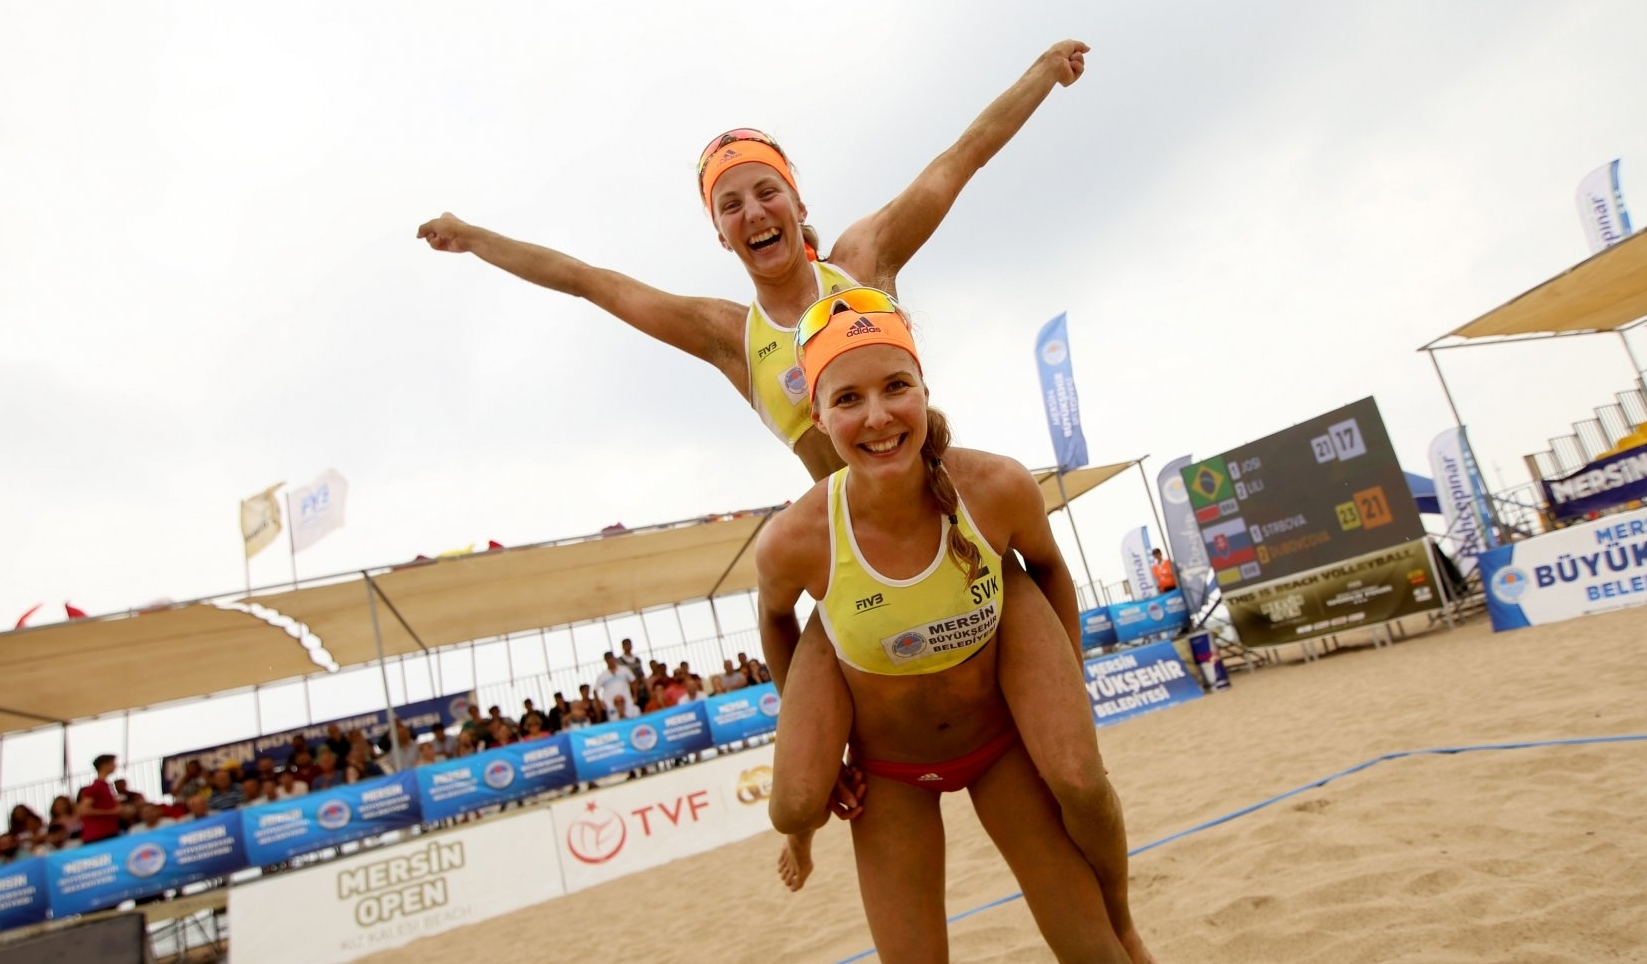 Dubvocova and her new partner Strbova dream about competing in the Tokyo 2020 Olympics (Photocredit: FIVB)